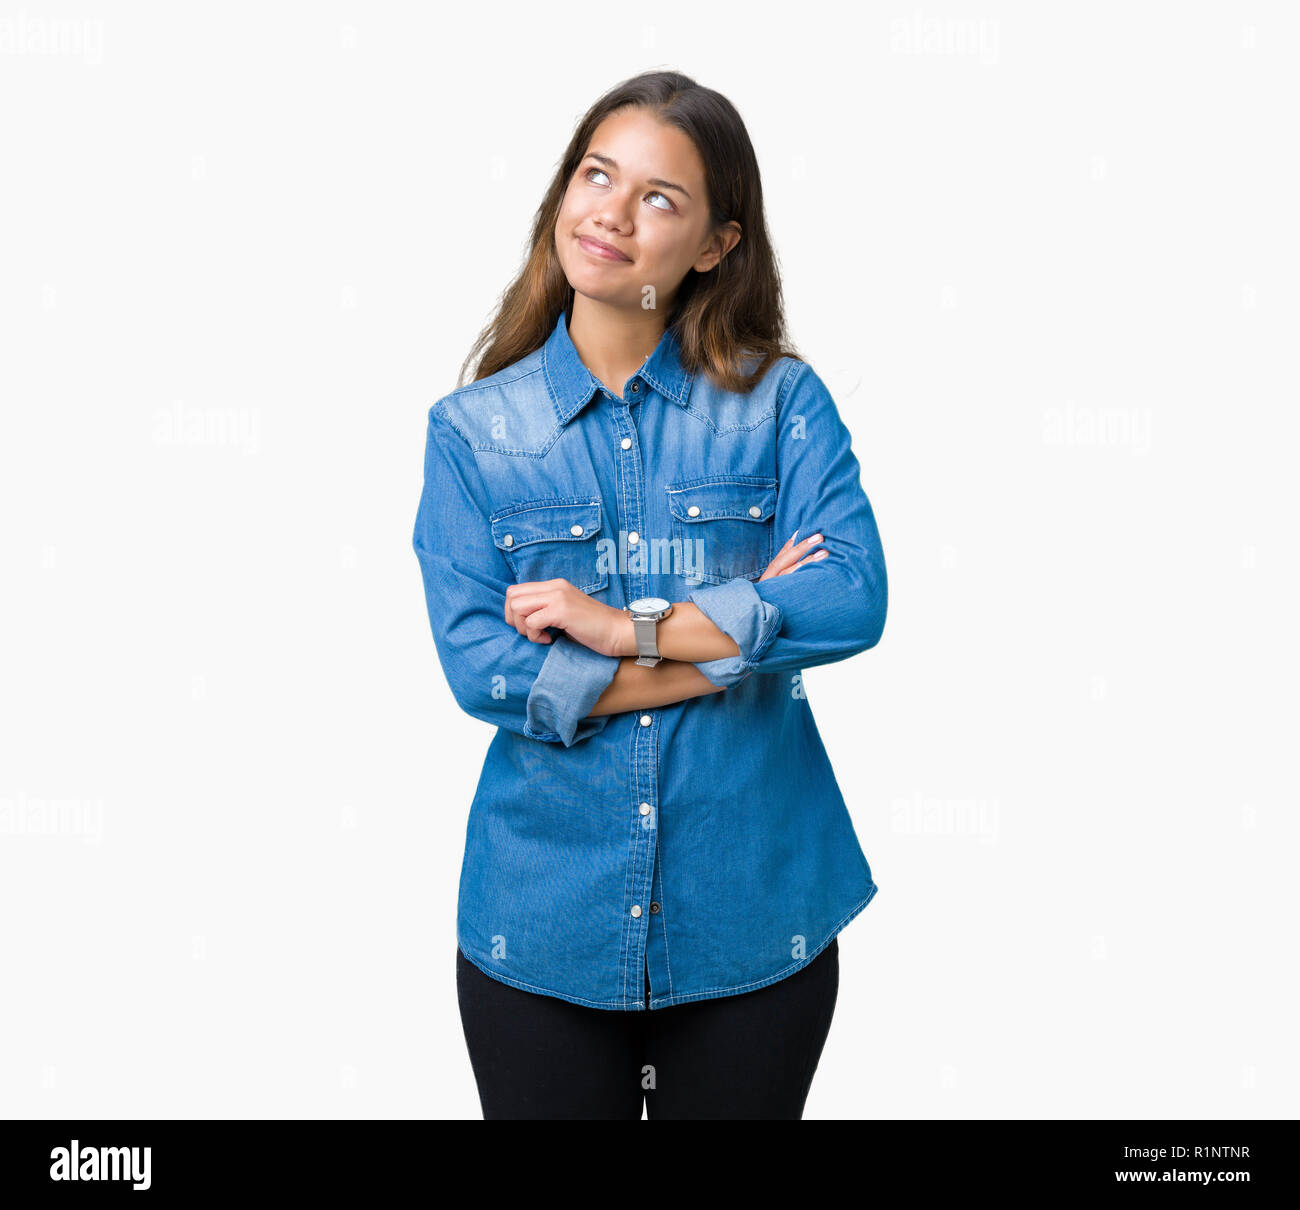 edf002a668 Young beautiful brunette woman wearing blue denim shirt over isolated  background smiling looking side and staring away thinking.